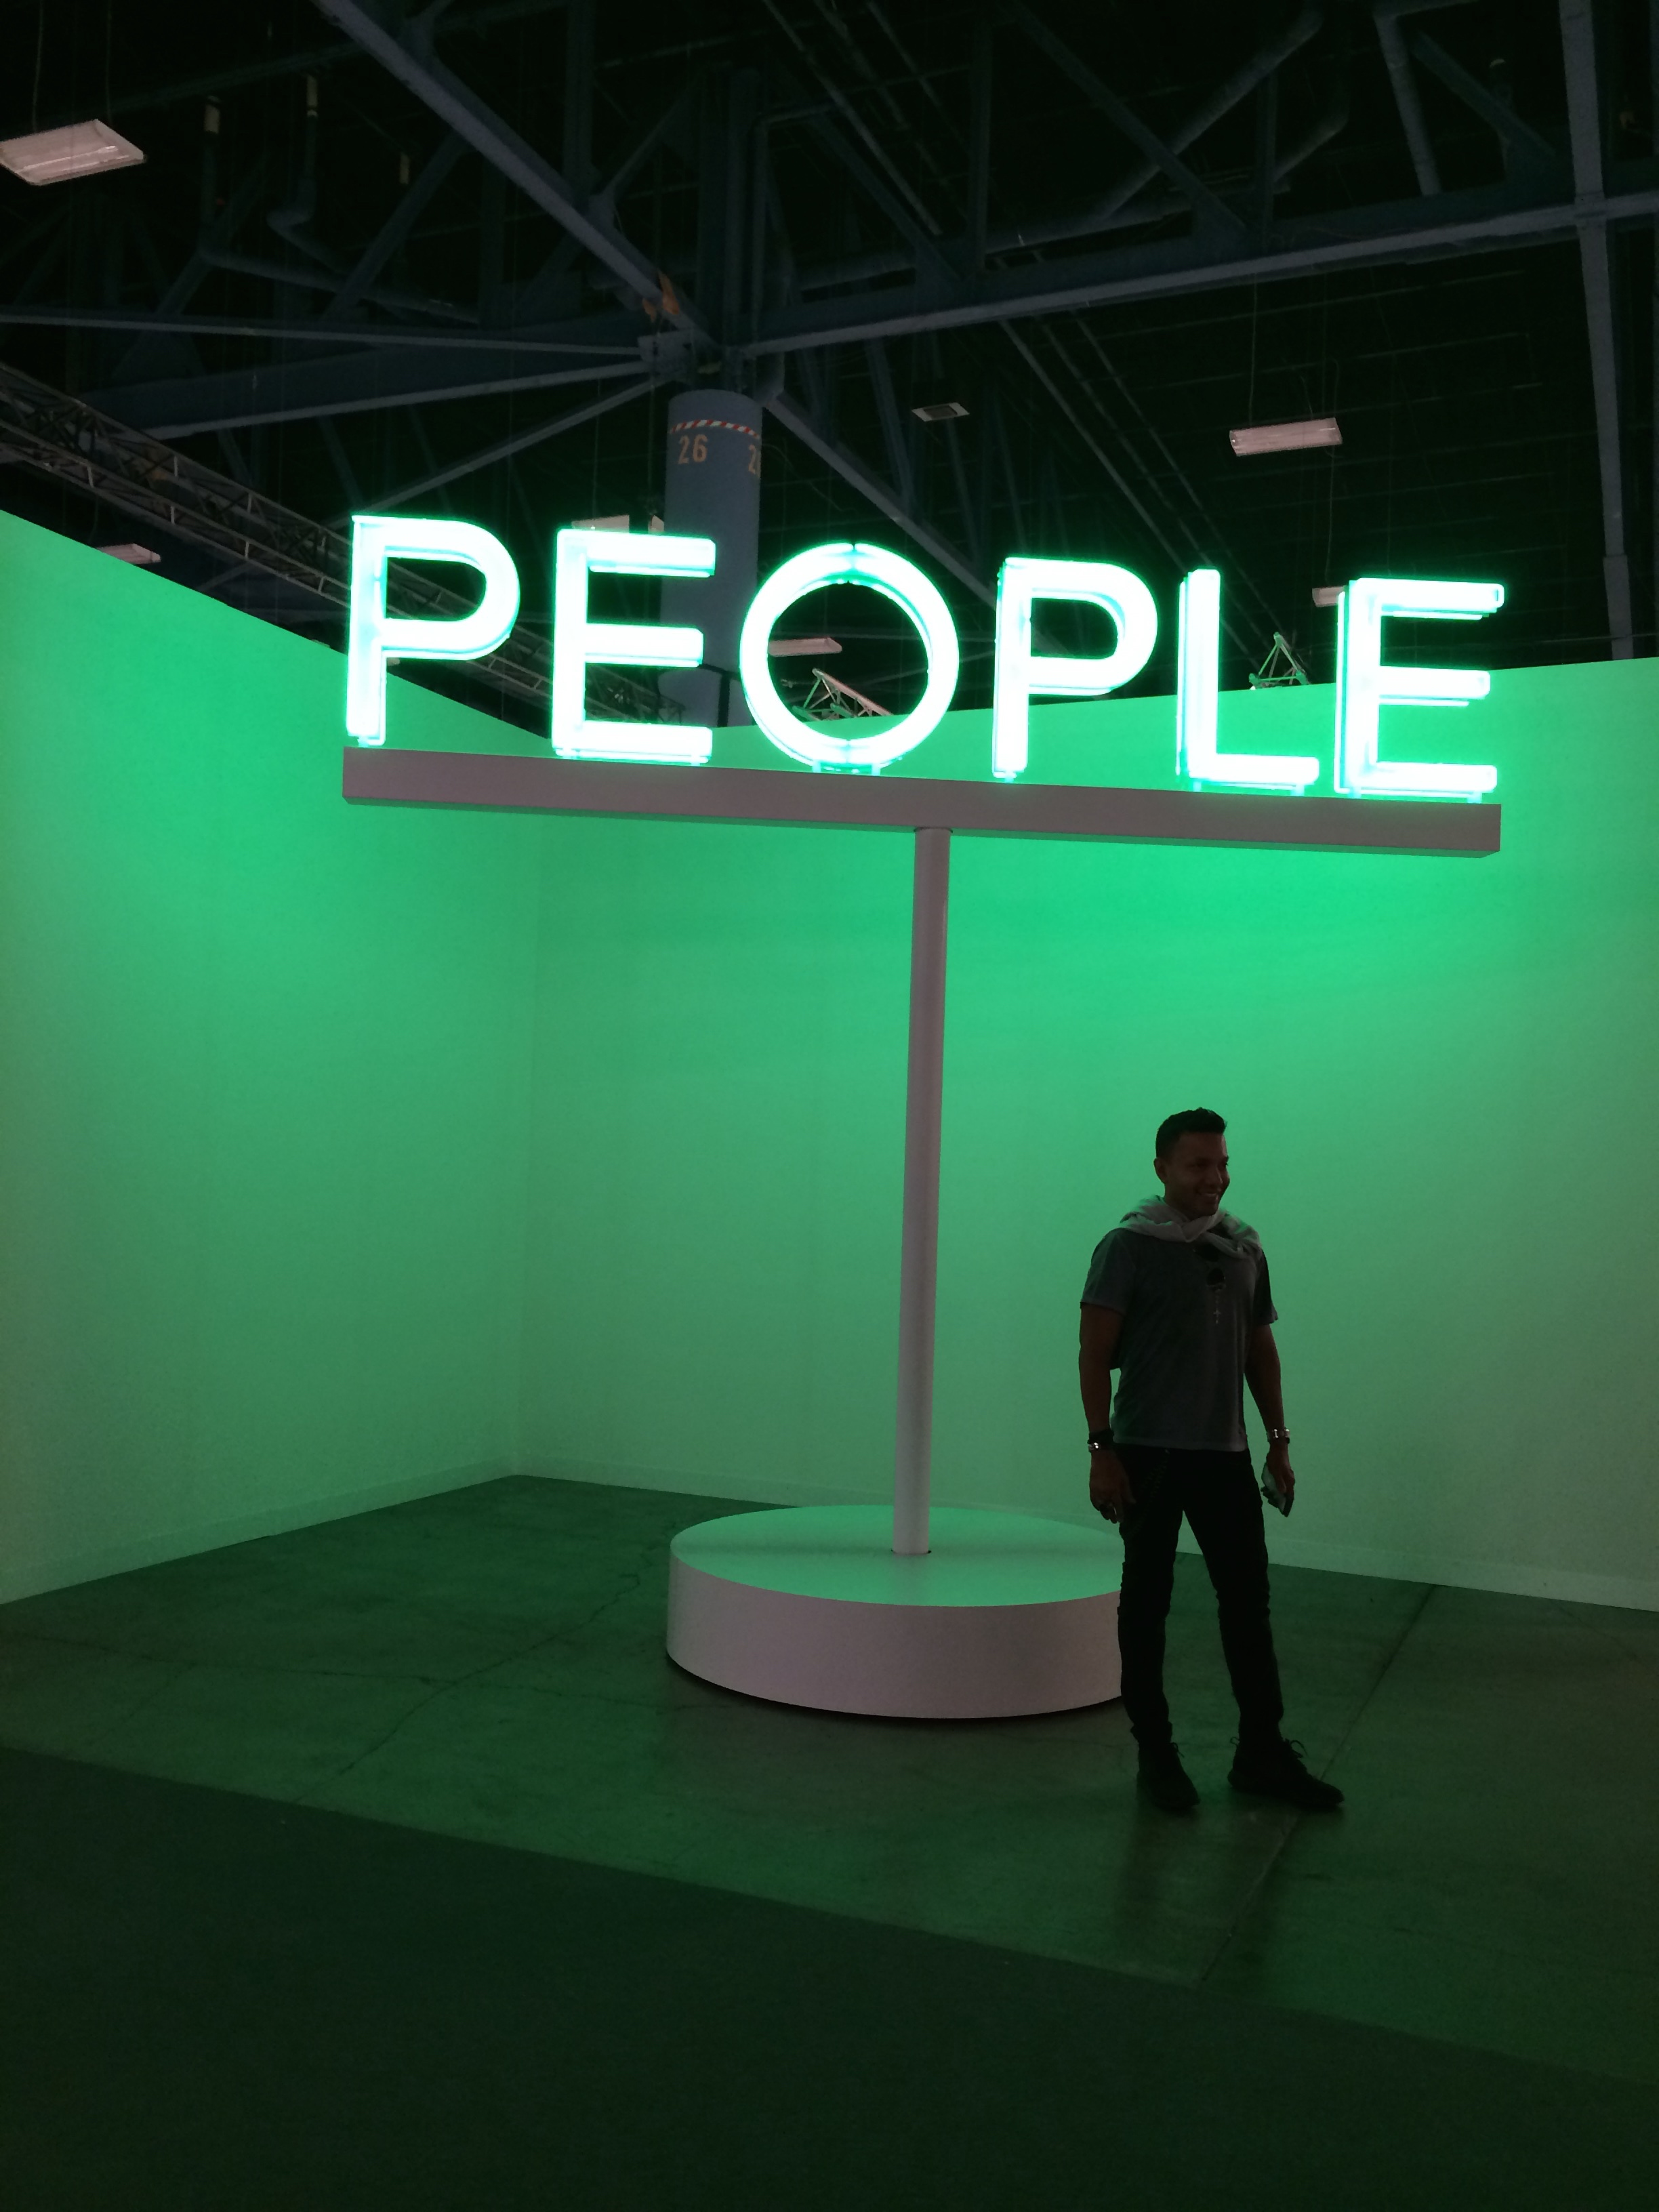 We might be going out on a limb to suggest this work by Martin Creed (  Work No. 2070: People, 2014. Neon, metal, motor. 126 x 120 x 5 in  ) was the most Instagramed (is that a word?) piece at the fair. It was irresistible and got my finger on the video shot dot, available for your viewing pleasure  here .